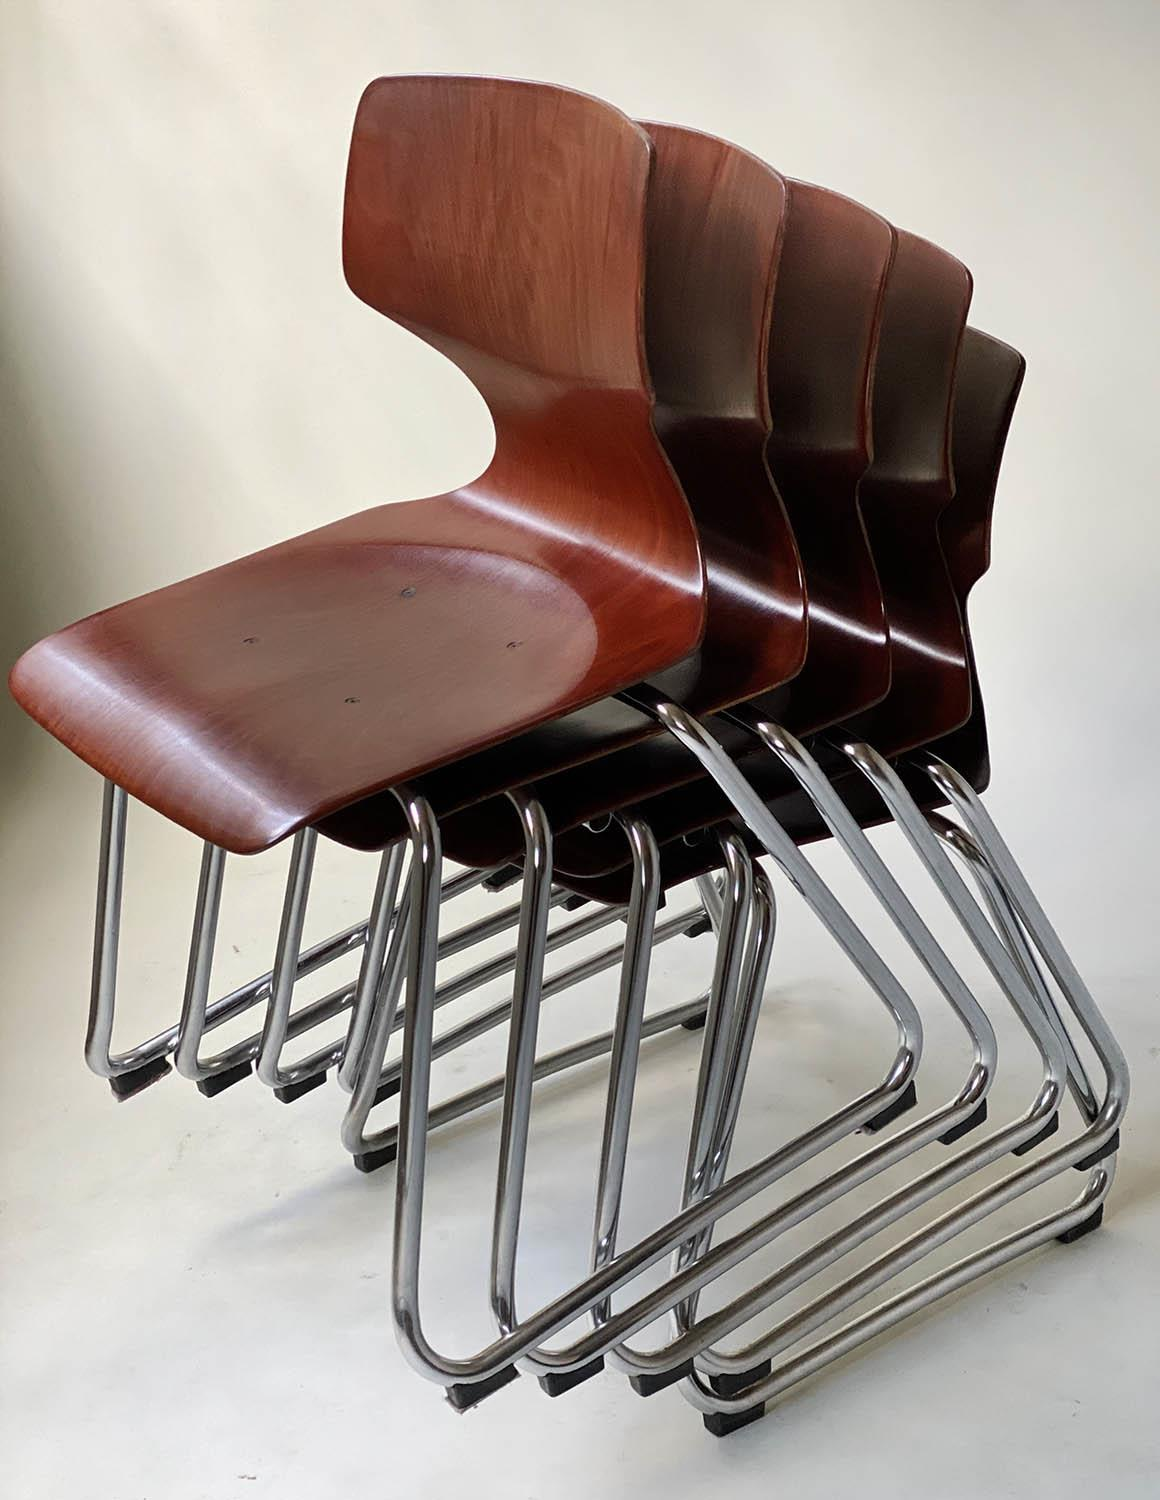 FLOTOTTO PAGHOLZ DINING CHAIRS, a set of five, by Elmar Flototto, 78cm H. (5) - Image 9 of 9